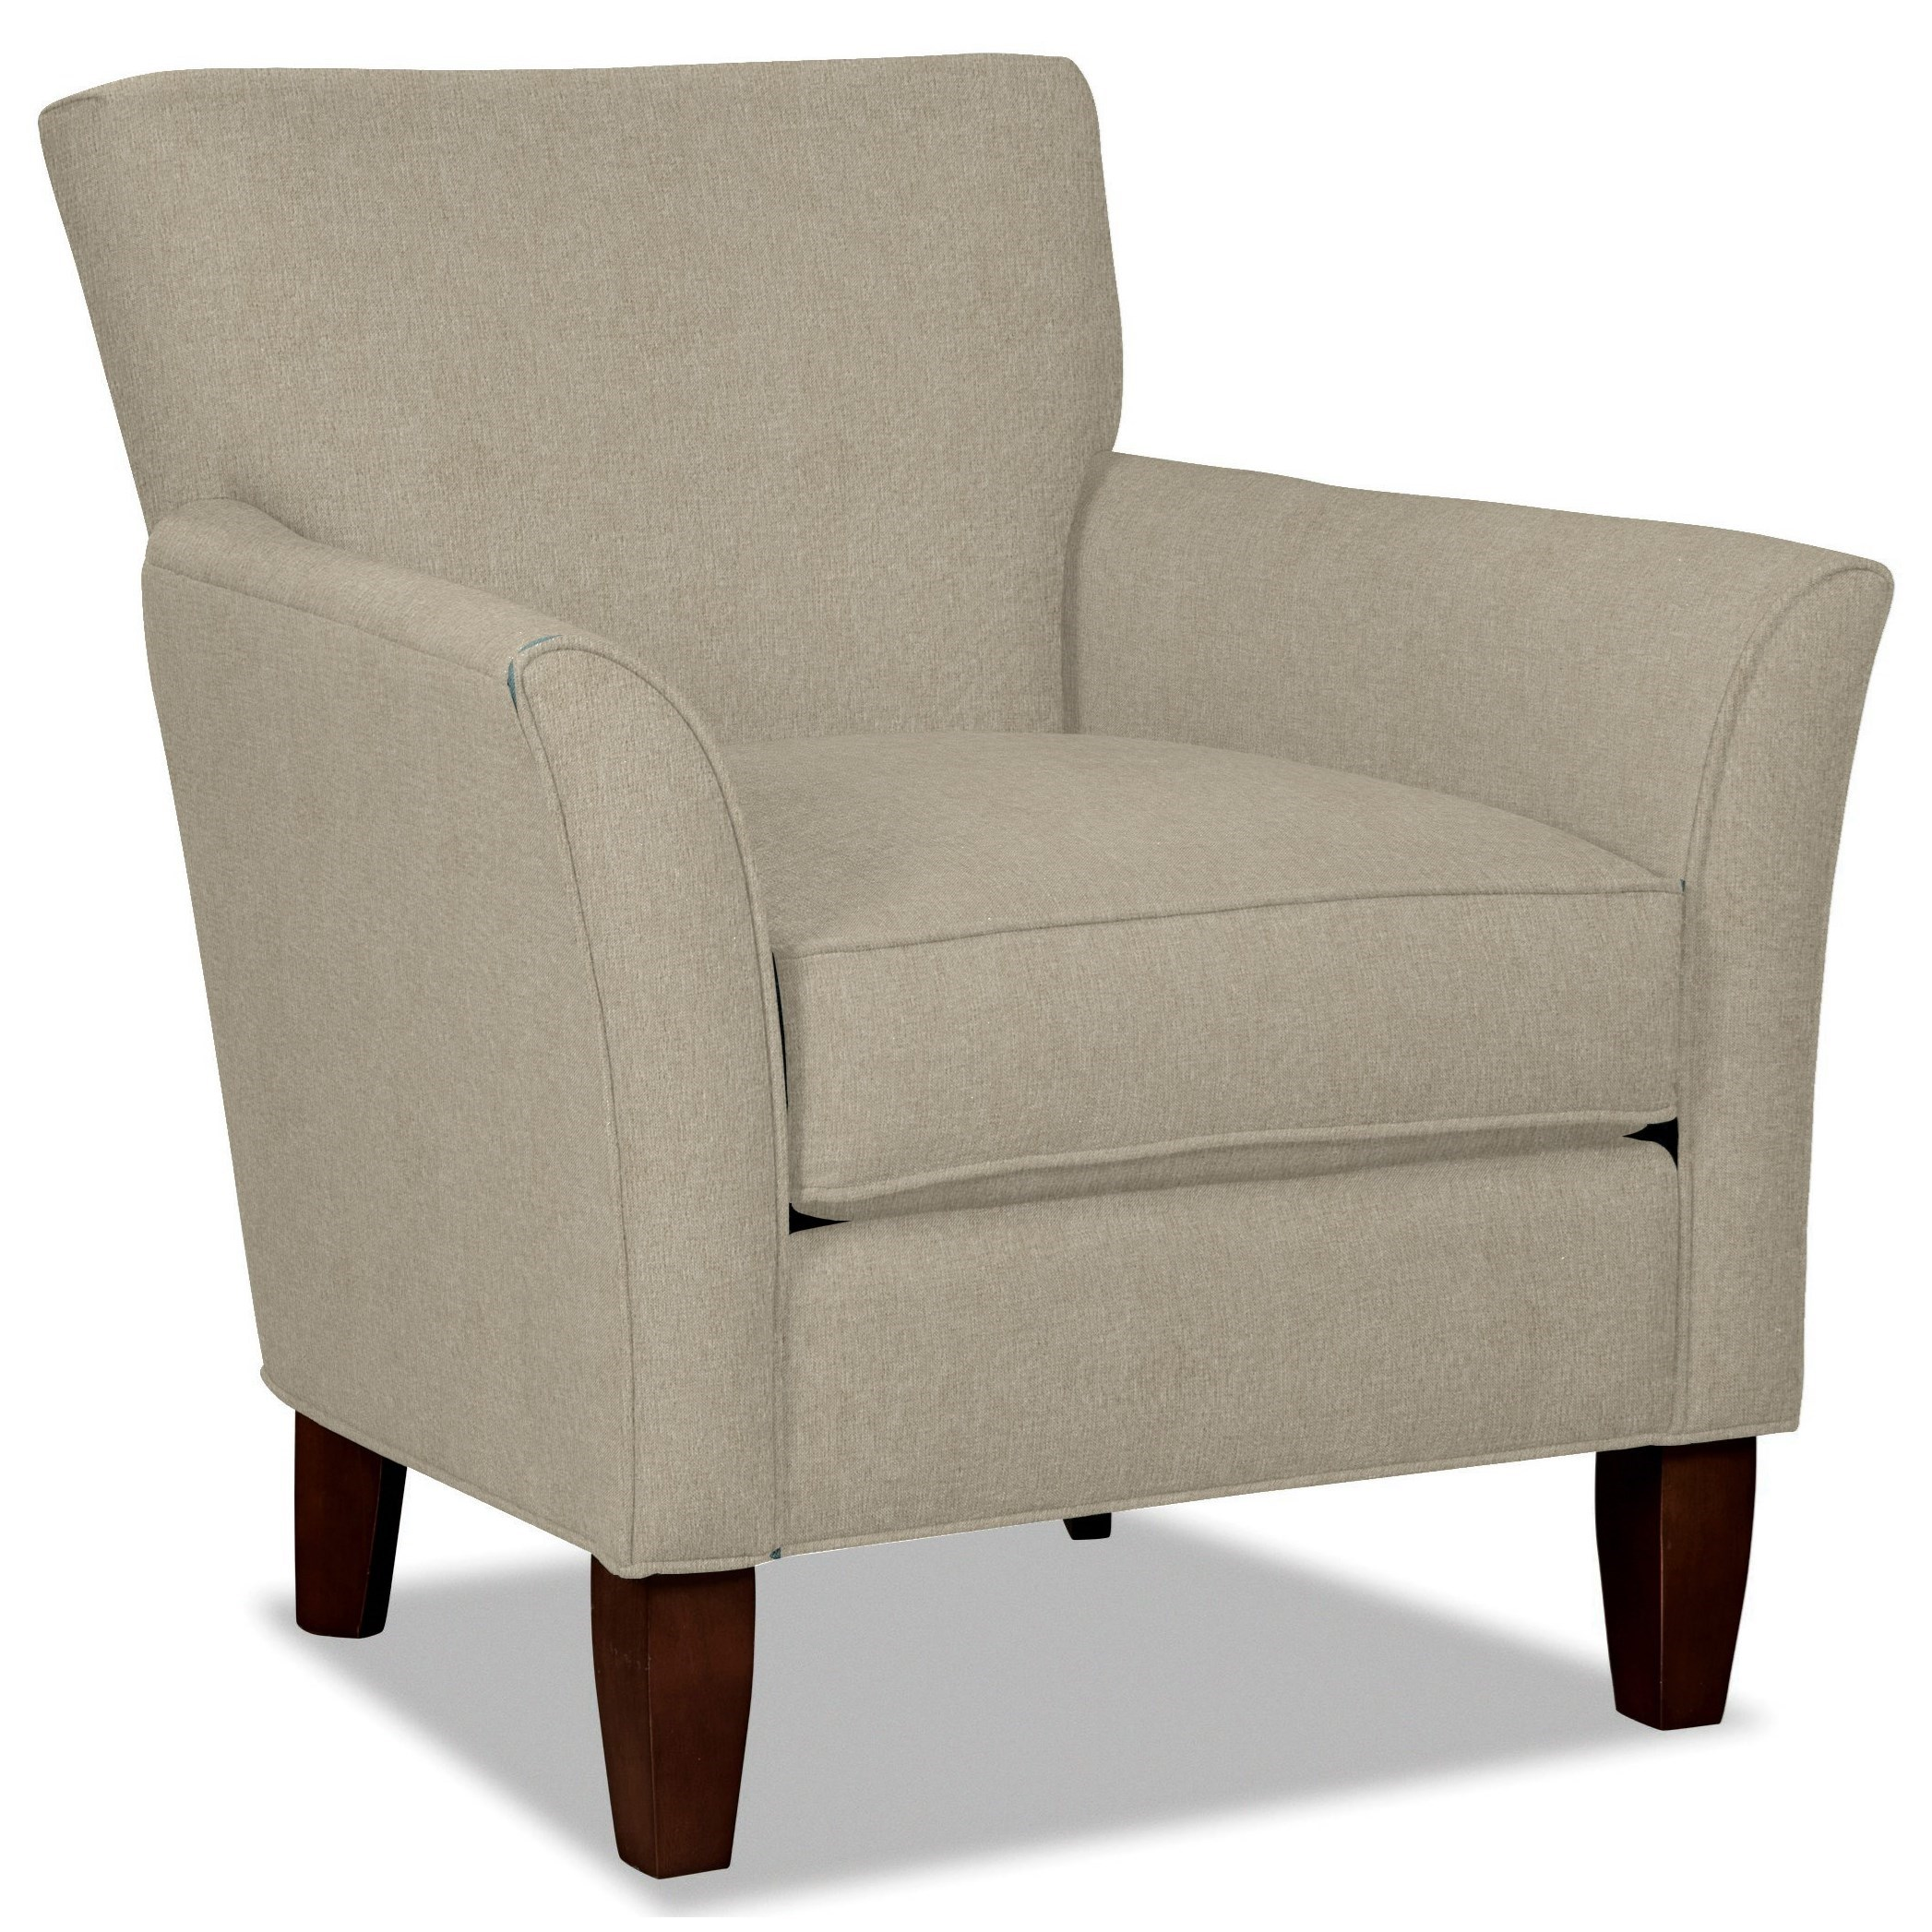 Craftmaster 060110 Accent Chair - Item Number: 060110-BURNISH-10